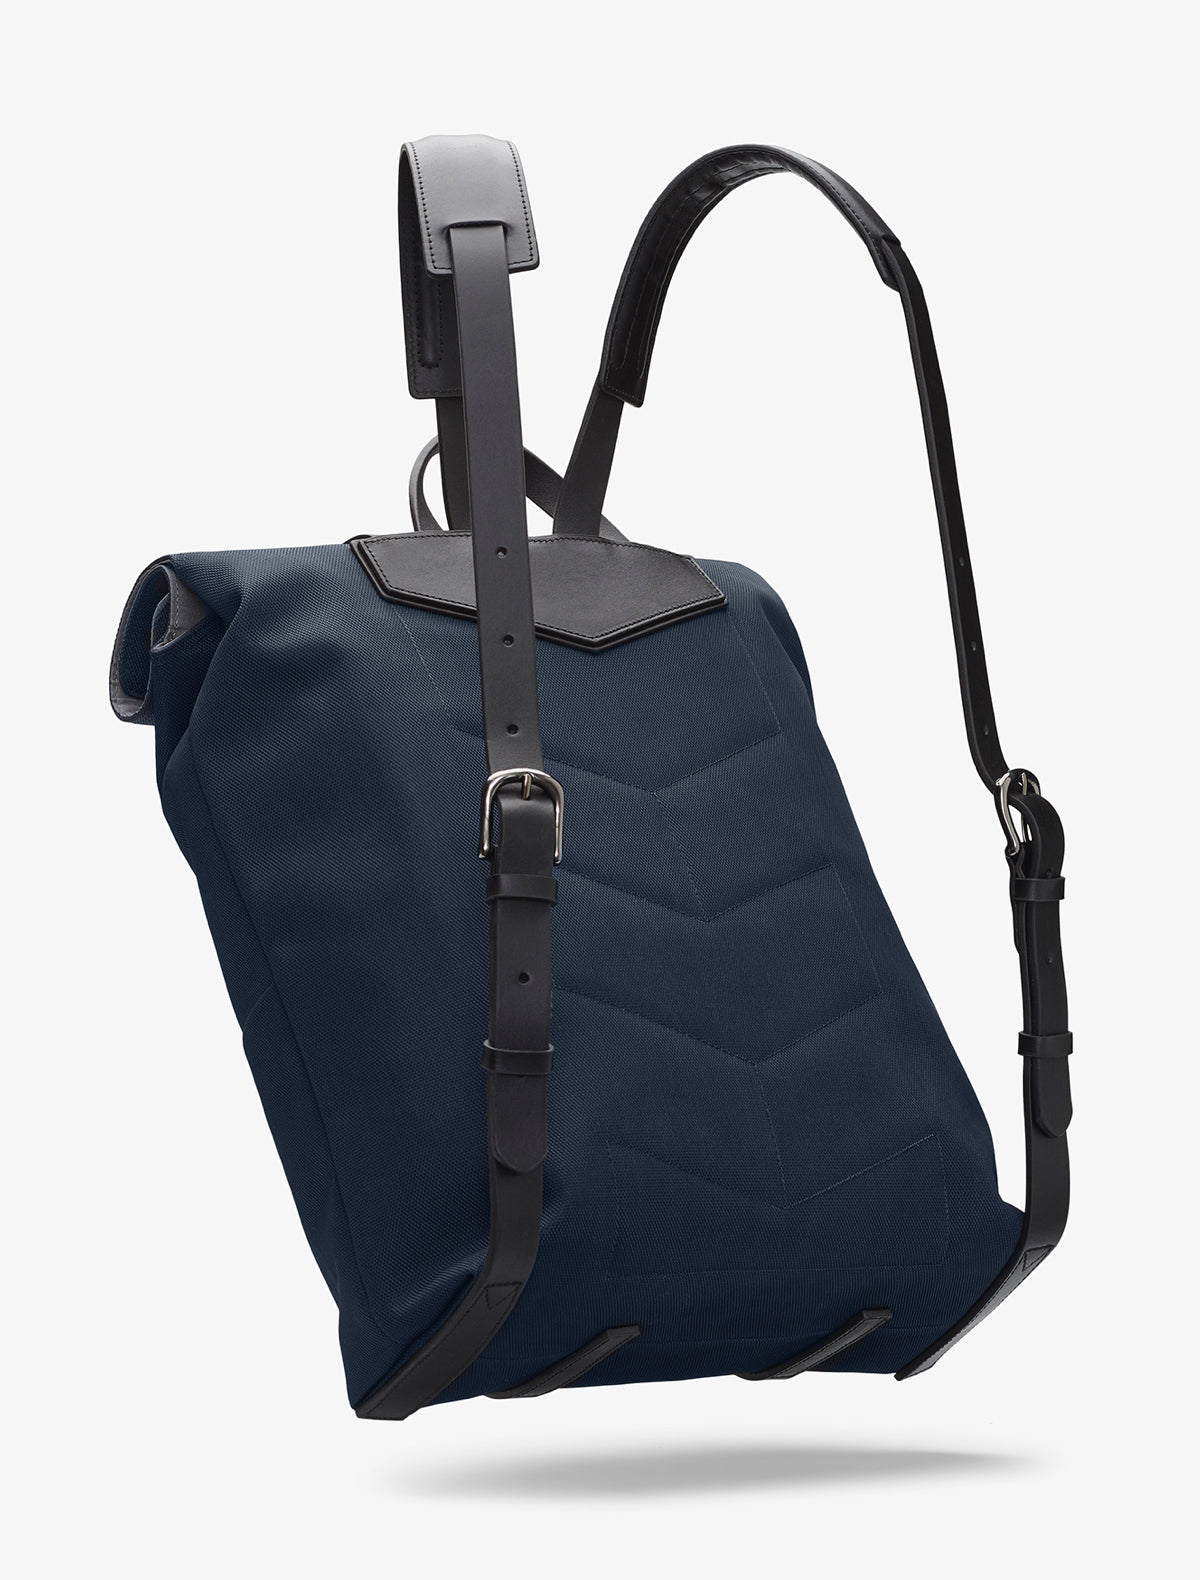 M/S Backpack – Deep blue/Black description image